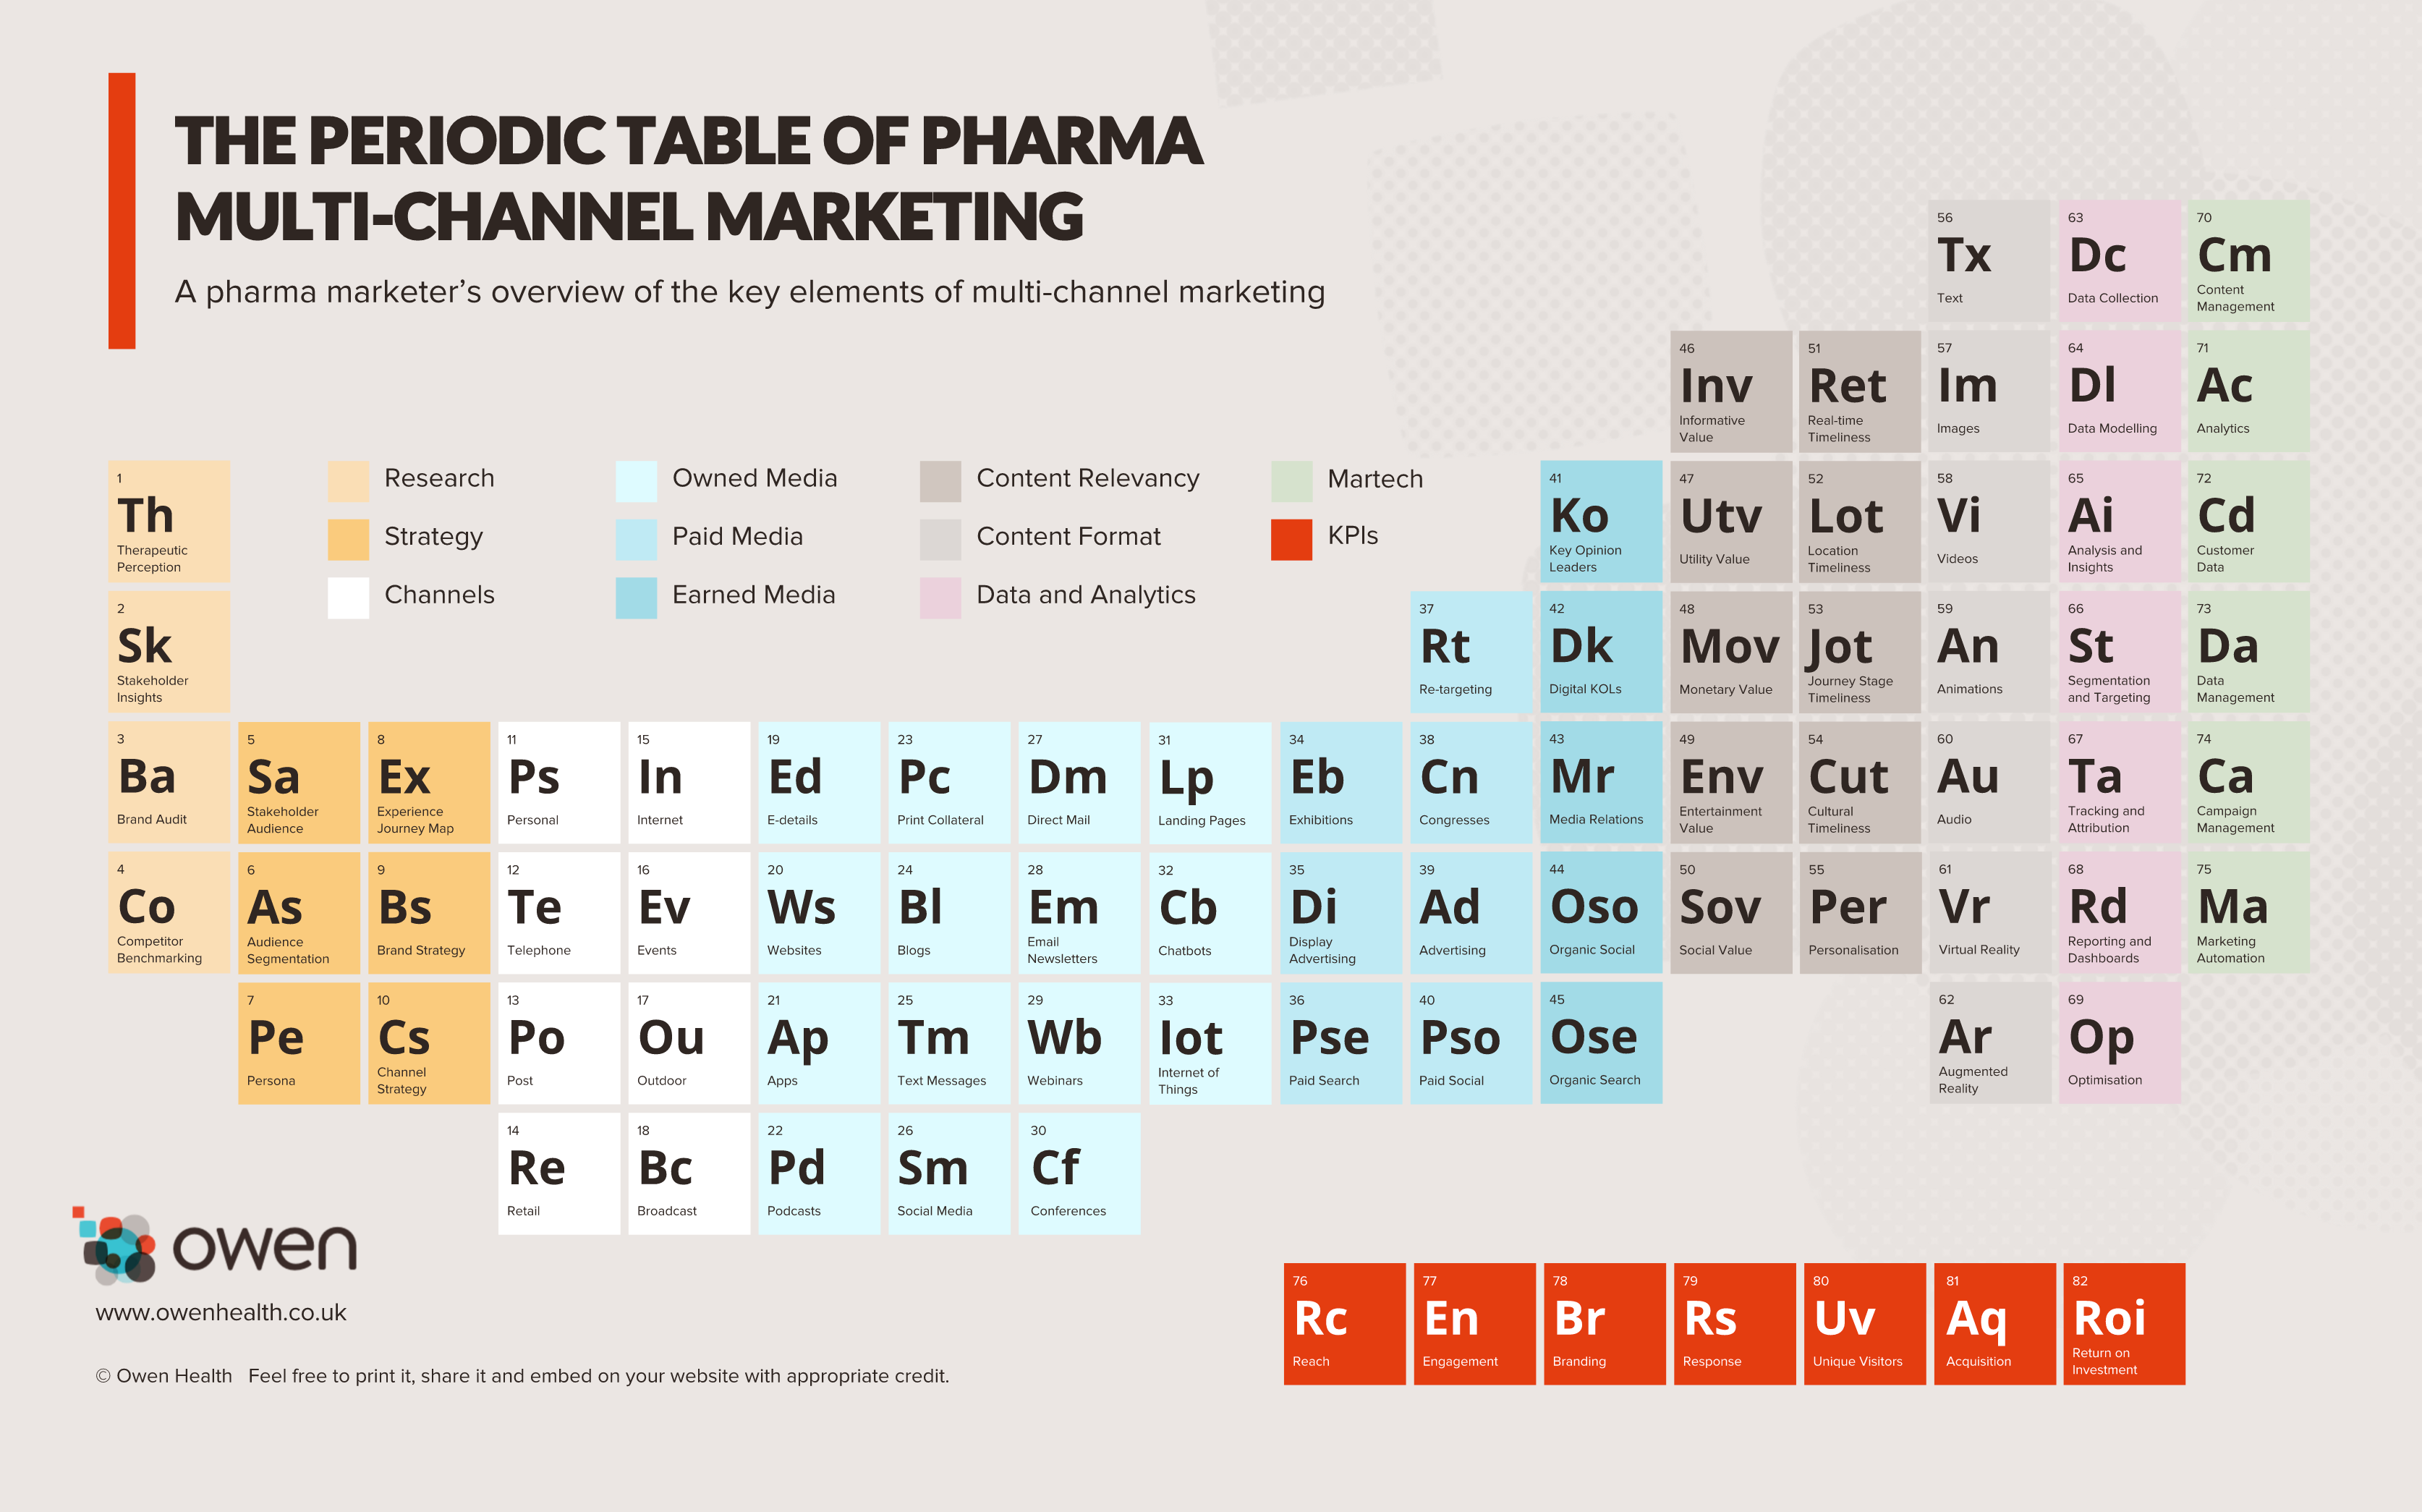 The_Periodic_Table_of_Pharma_Multi-channel_Marketing